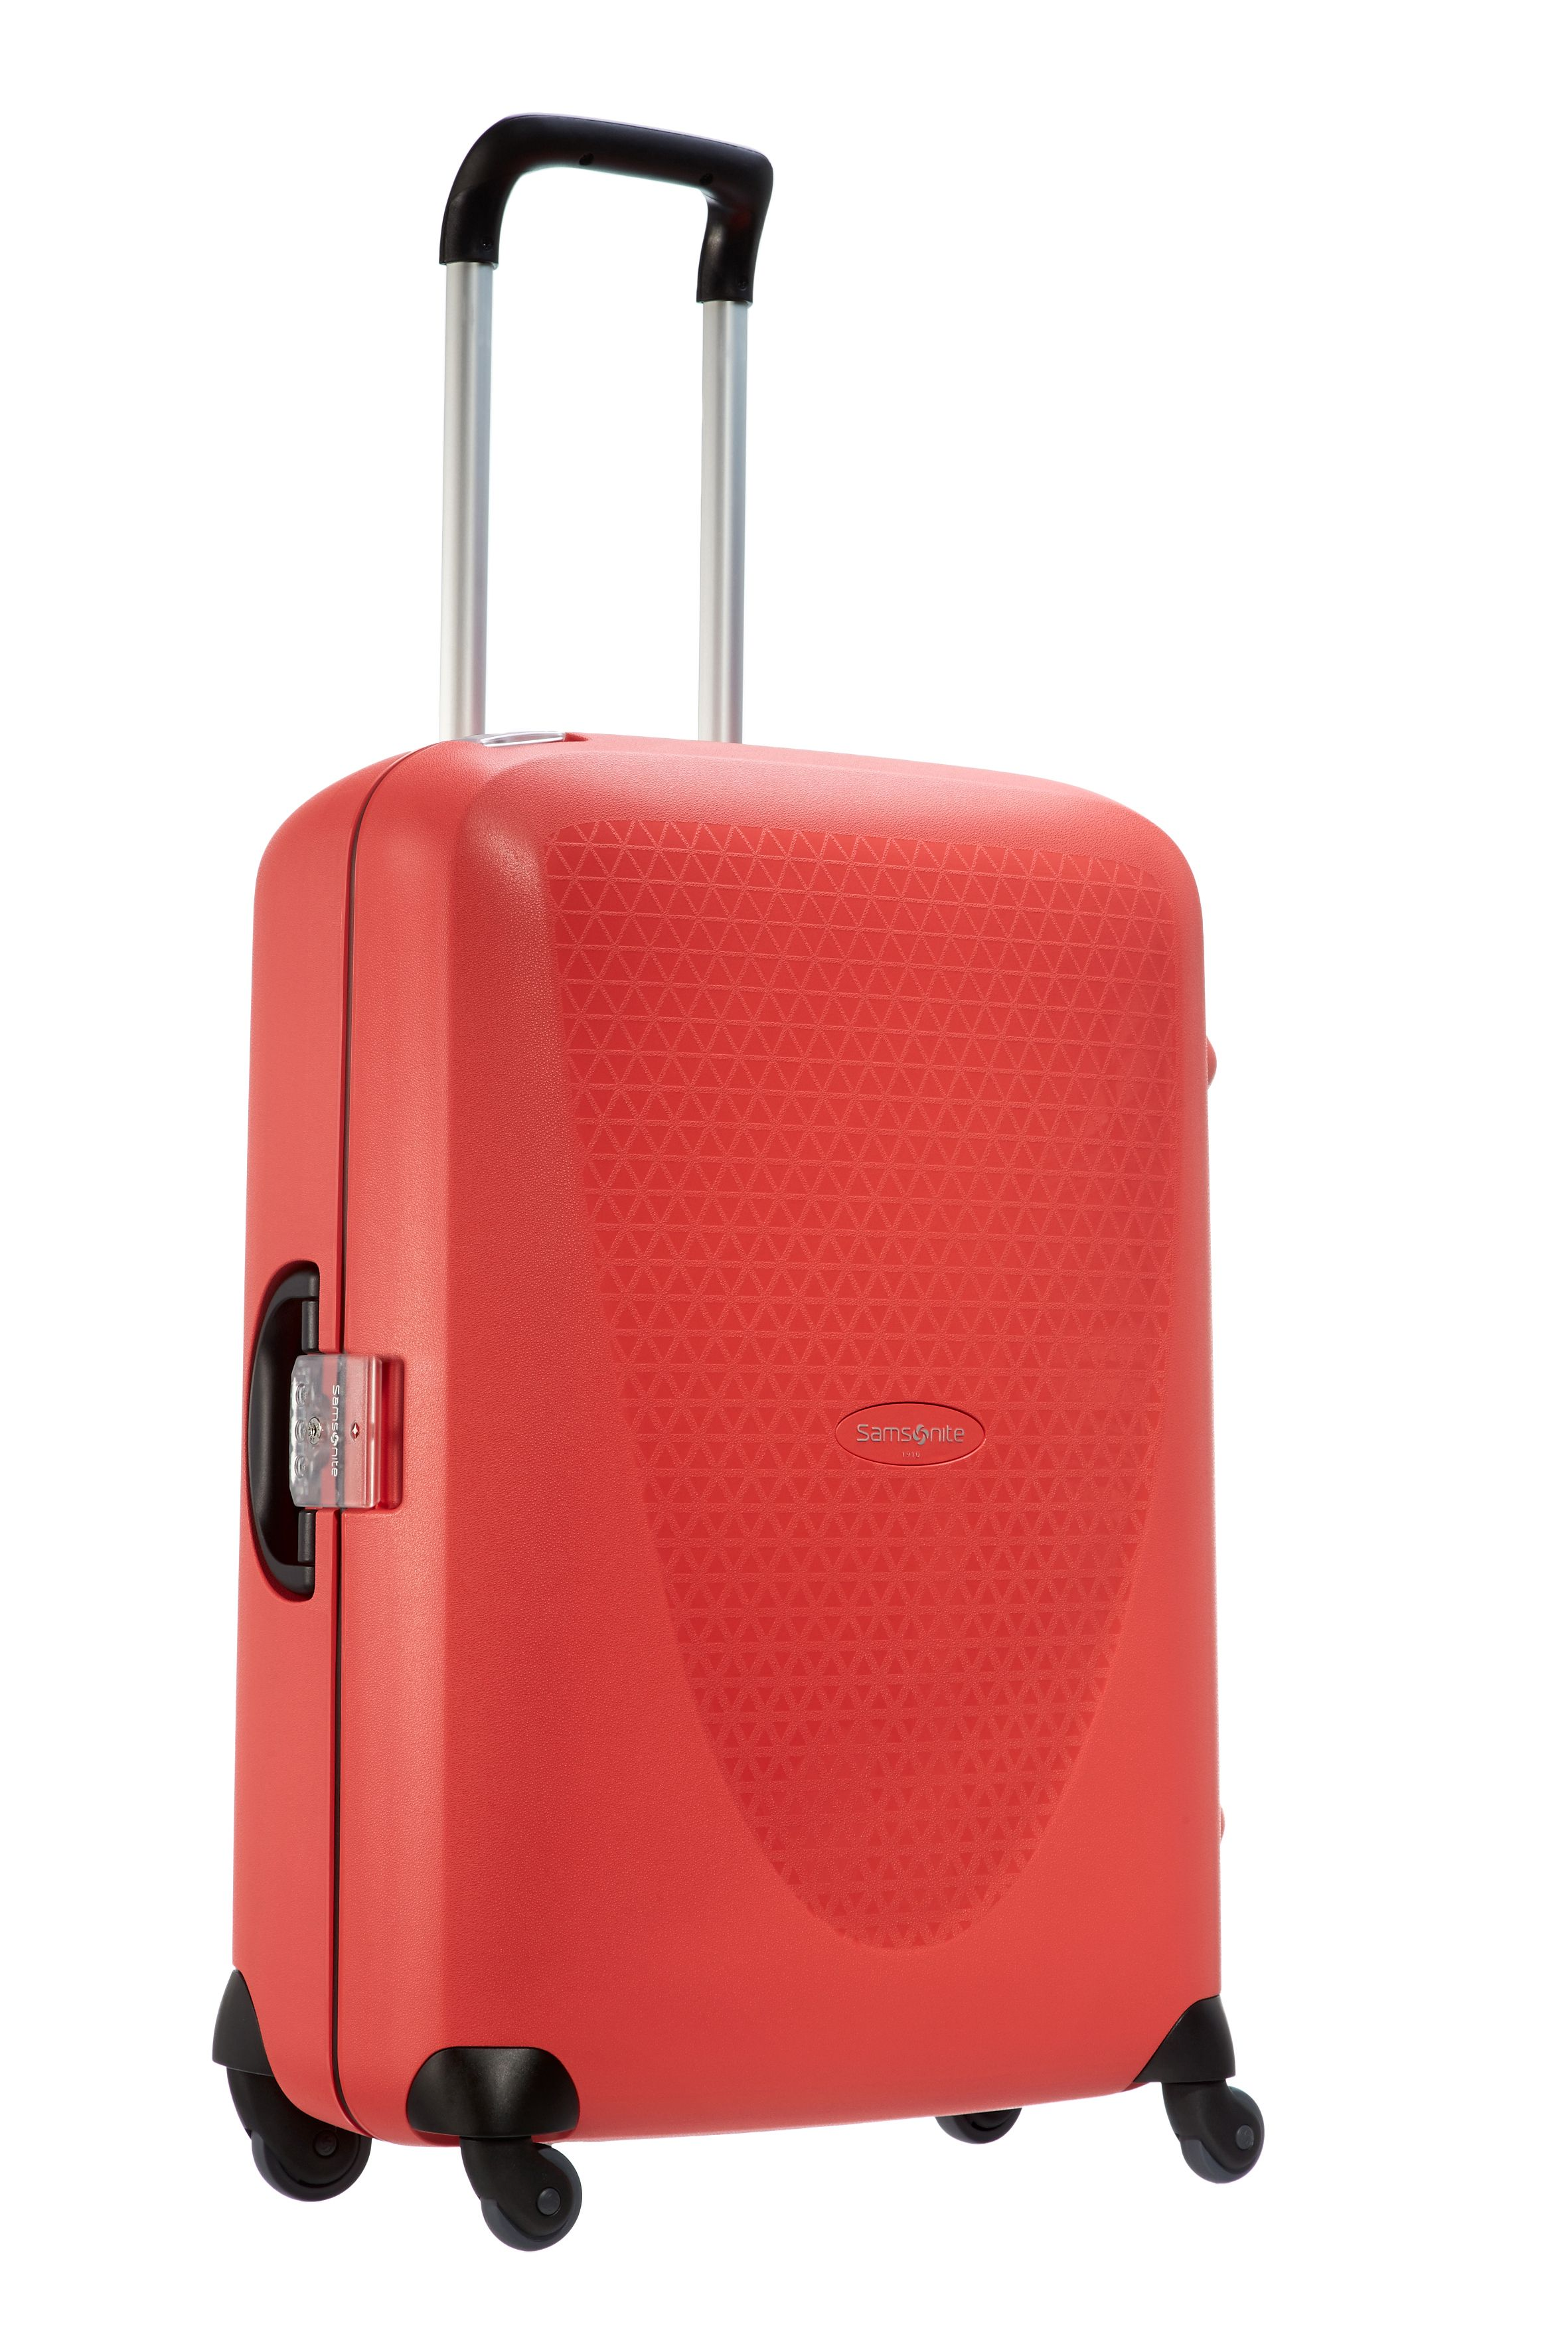 Termo Young Dusty Coral 70cm #Samsonite #TermoYoung #Travel ...